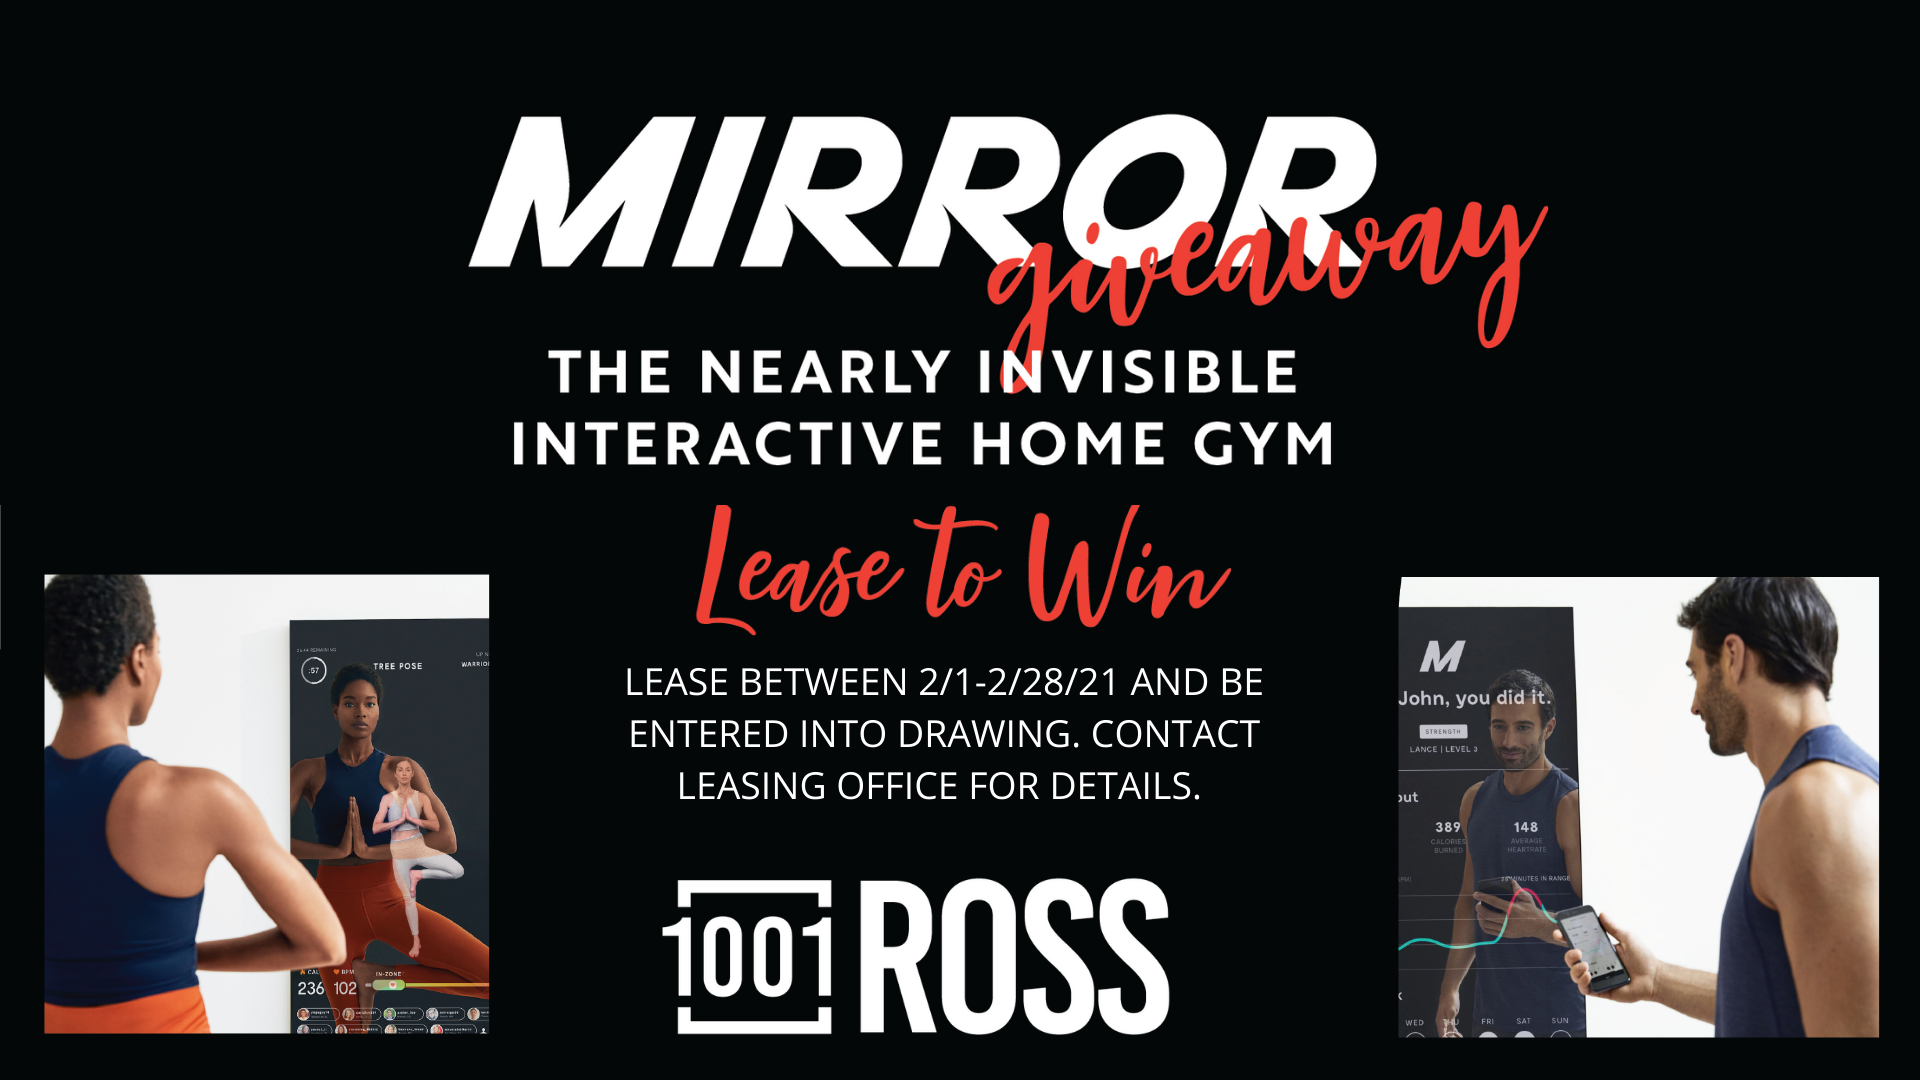 Mirror Giveaway. The nearly invisible interactive home gym. Lease to win. Lease between February 1, 2021 to February 28, 2021 and be entered into drawing. Contact leasing office for details. 1001 Ross.